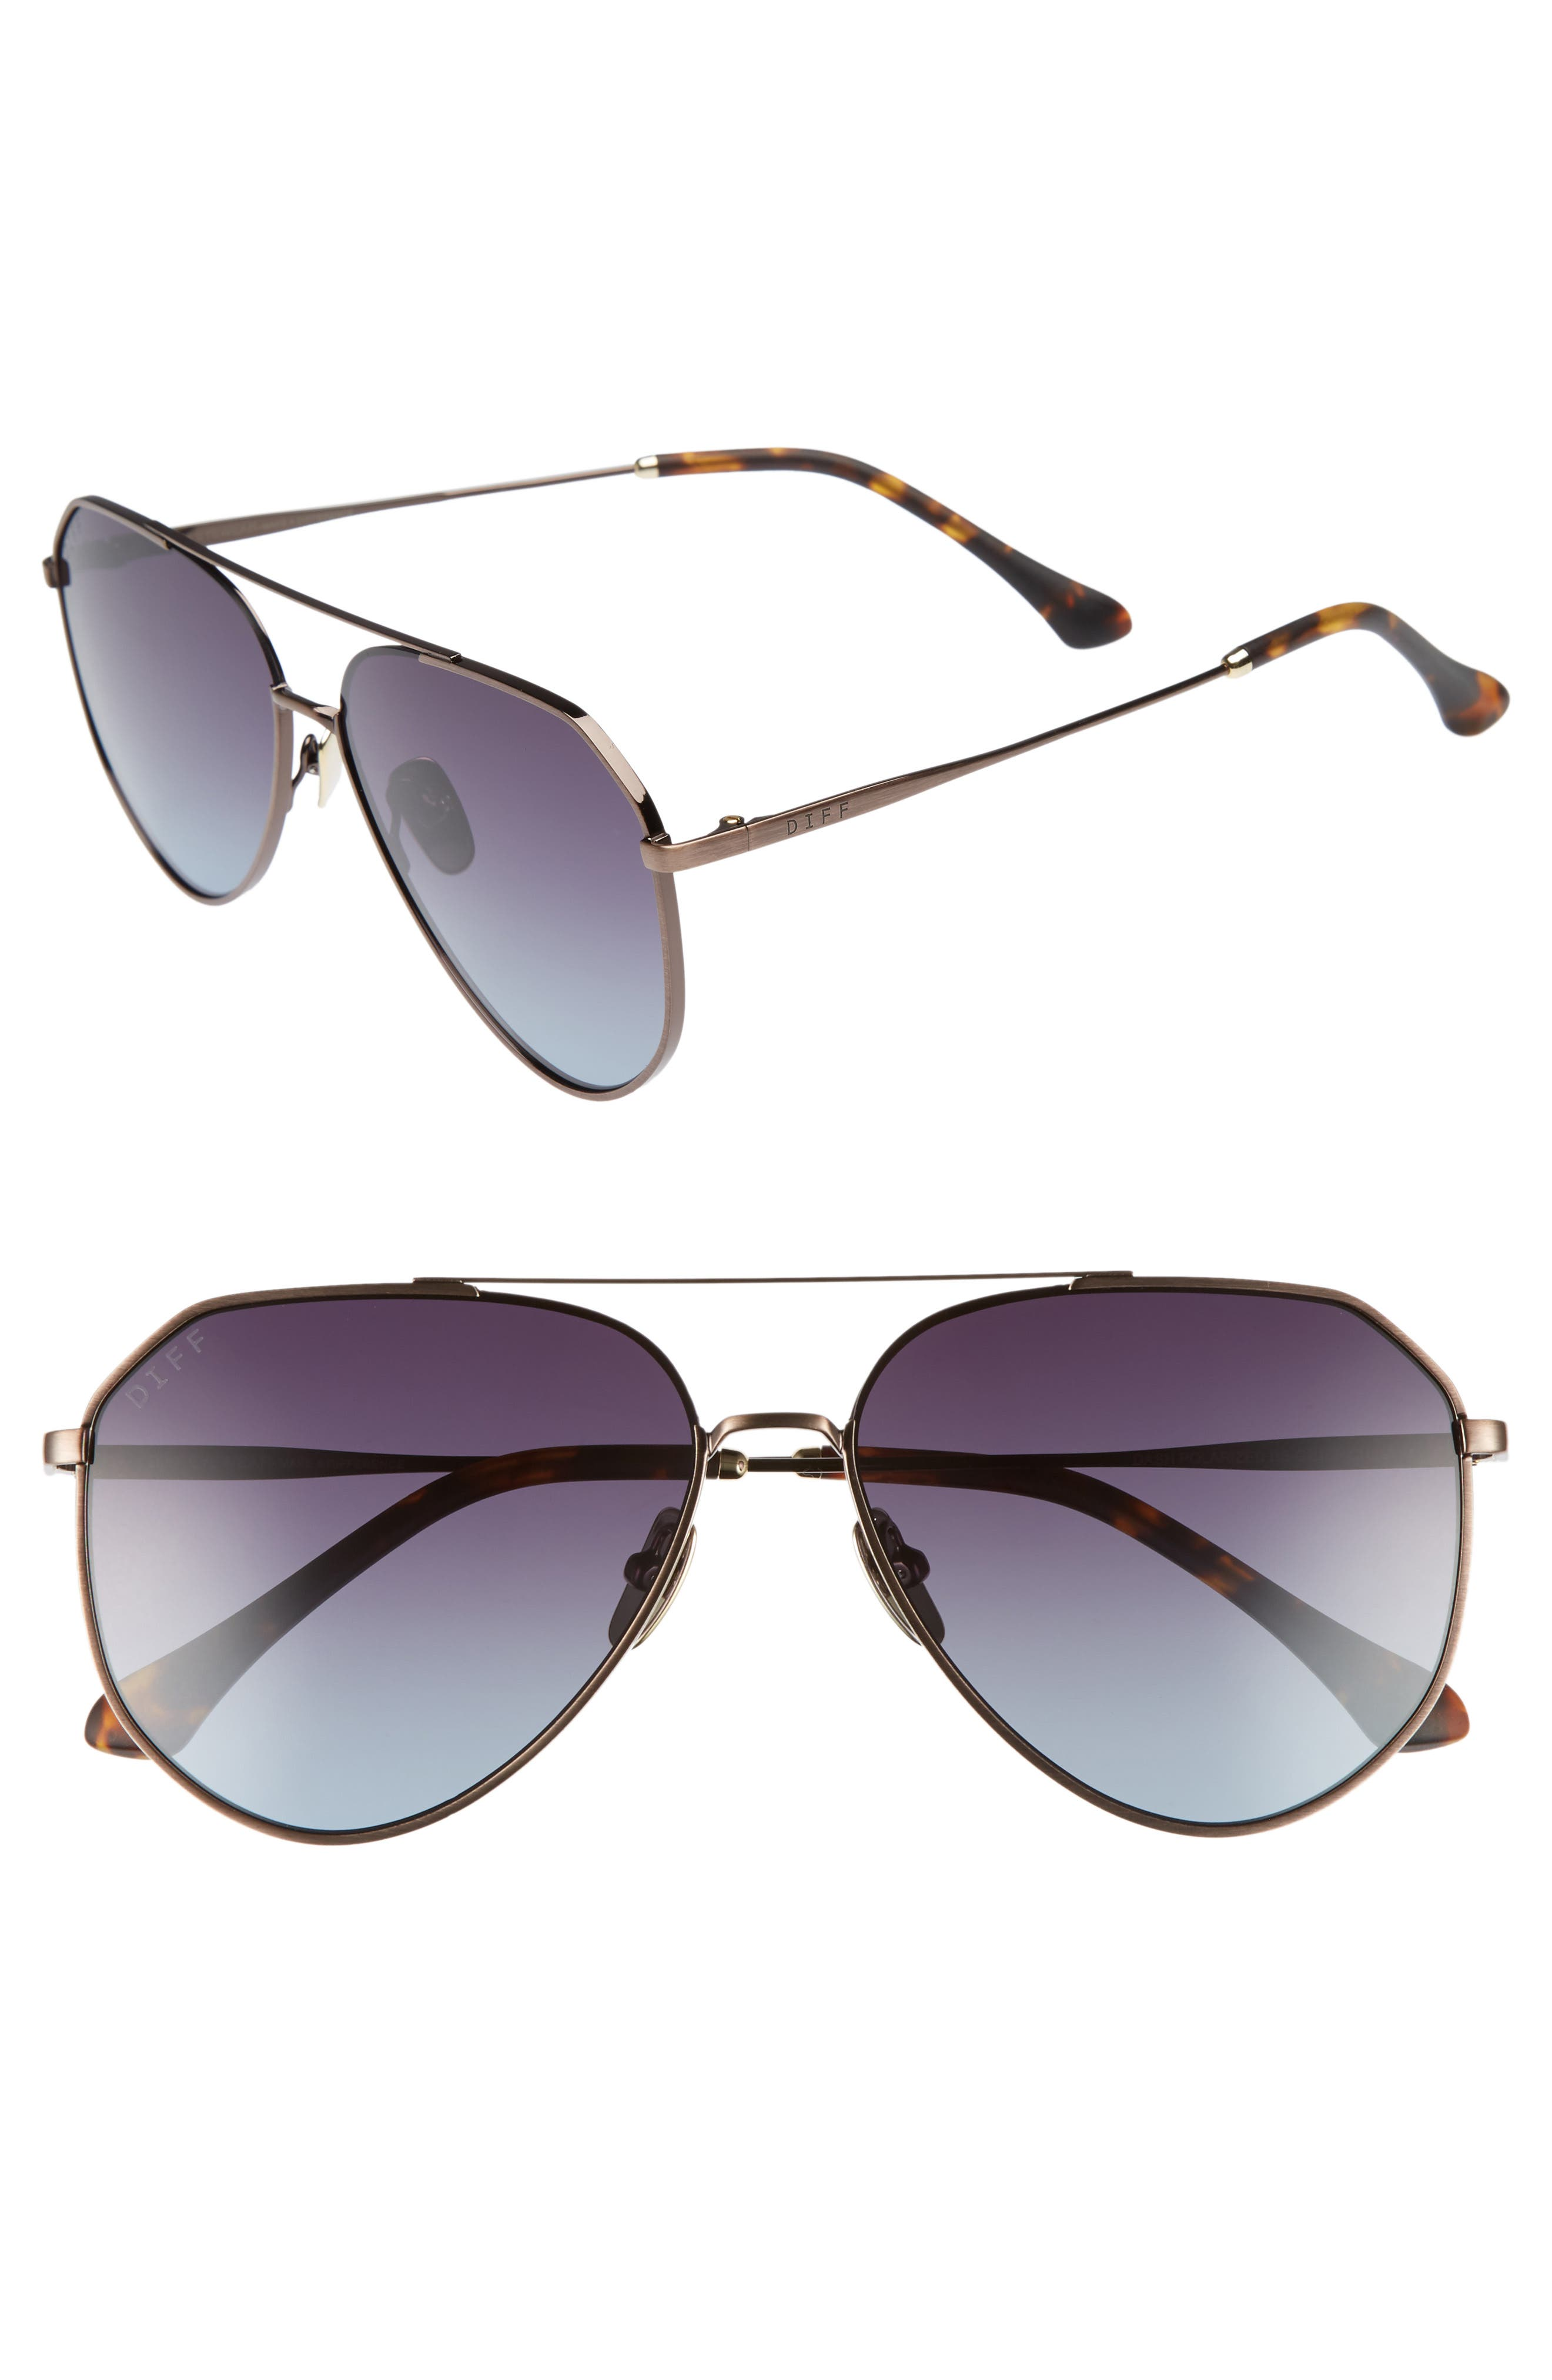 Main Image - DIFF Dash 58mm Aviator Sunglasses